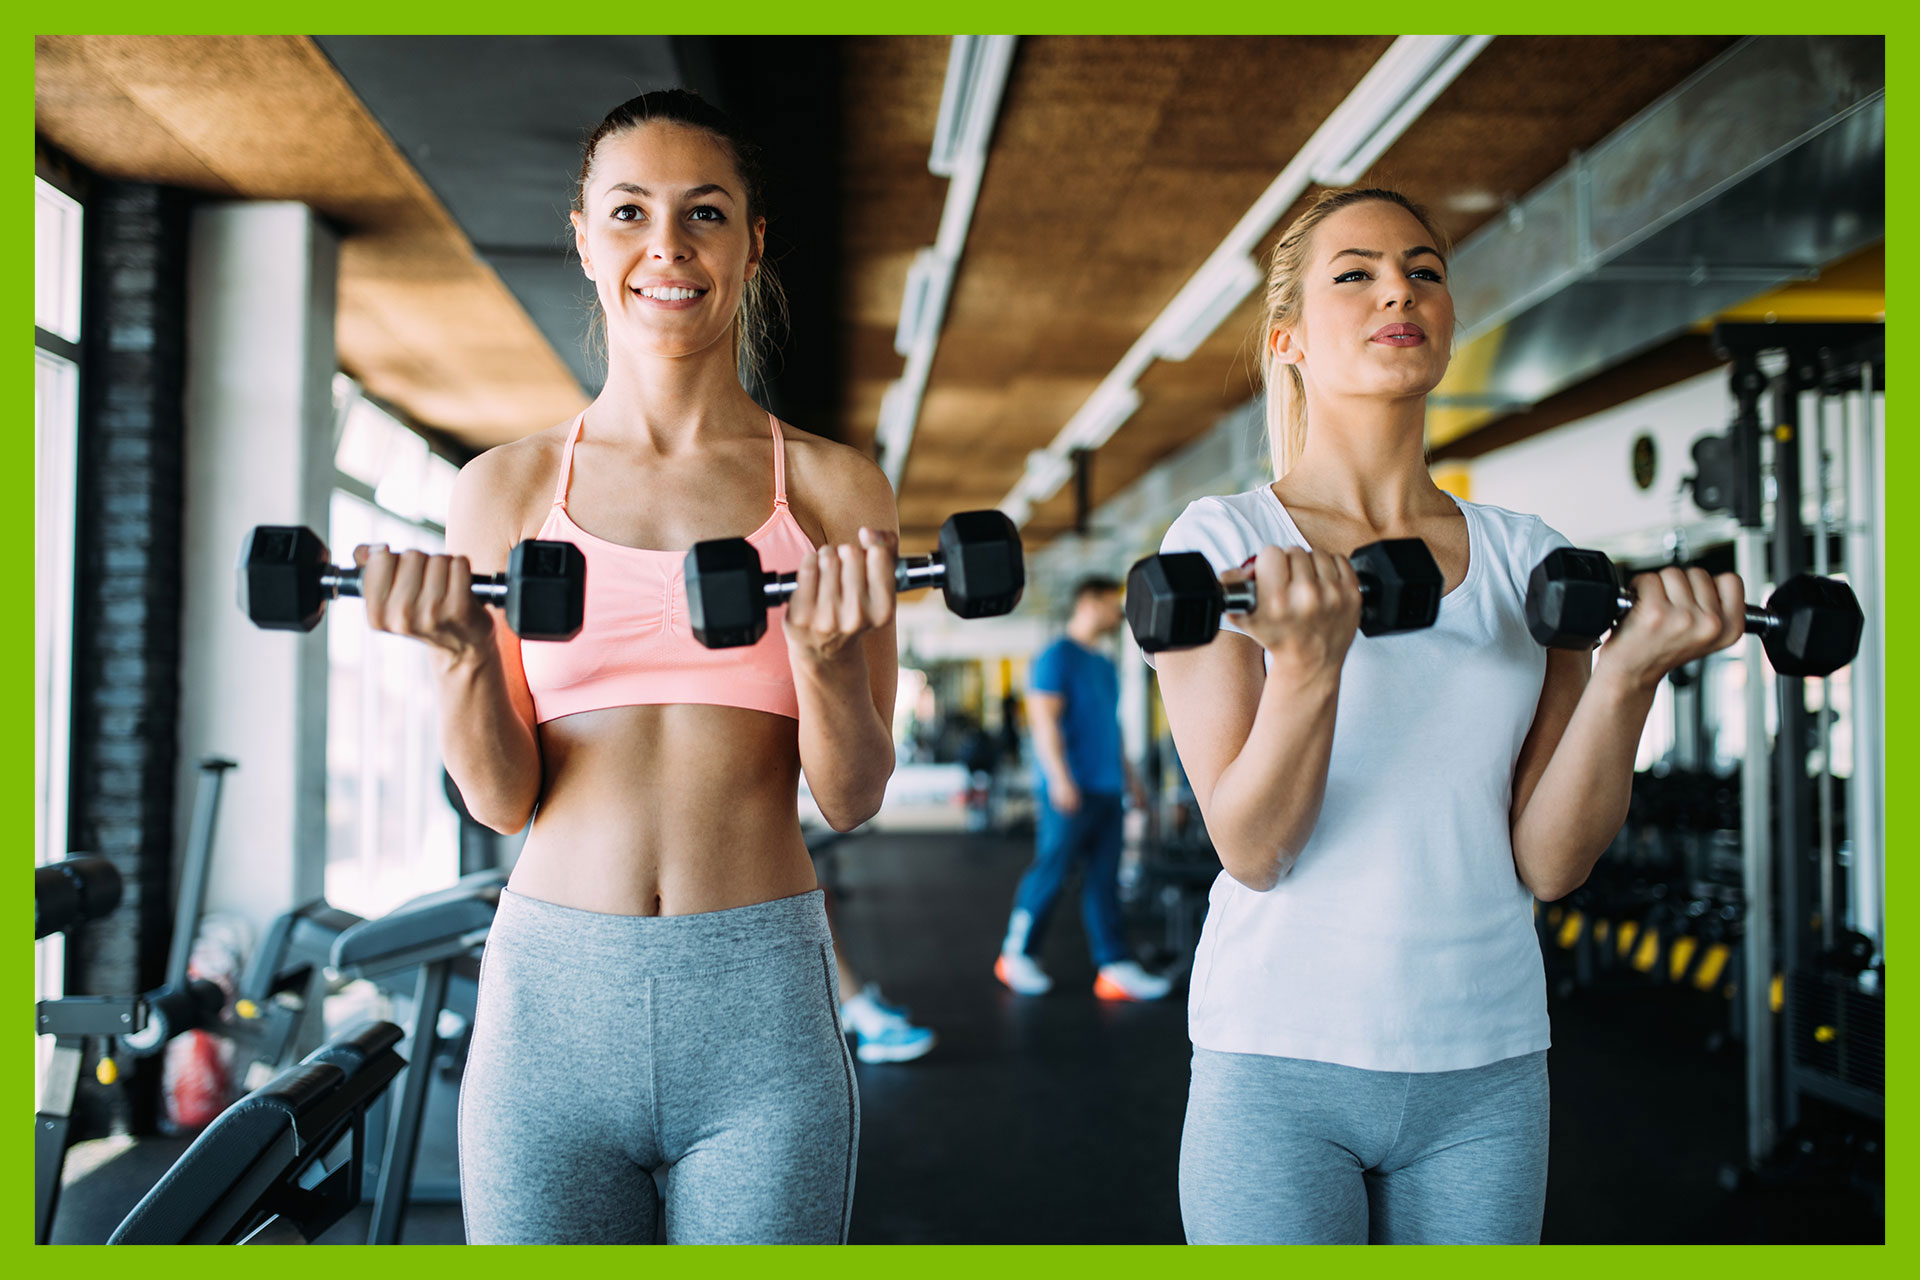 Evolve into the person you want to be at LoHi Athletic Club.  A fitness center and gym in Denver, Colorado.